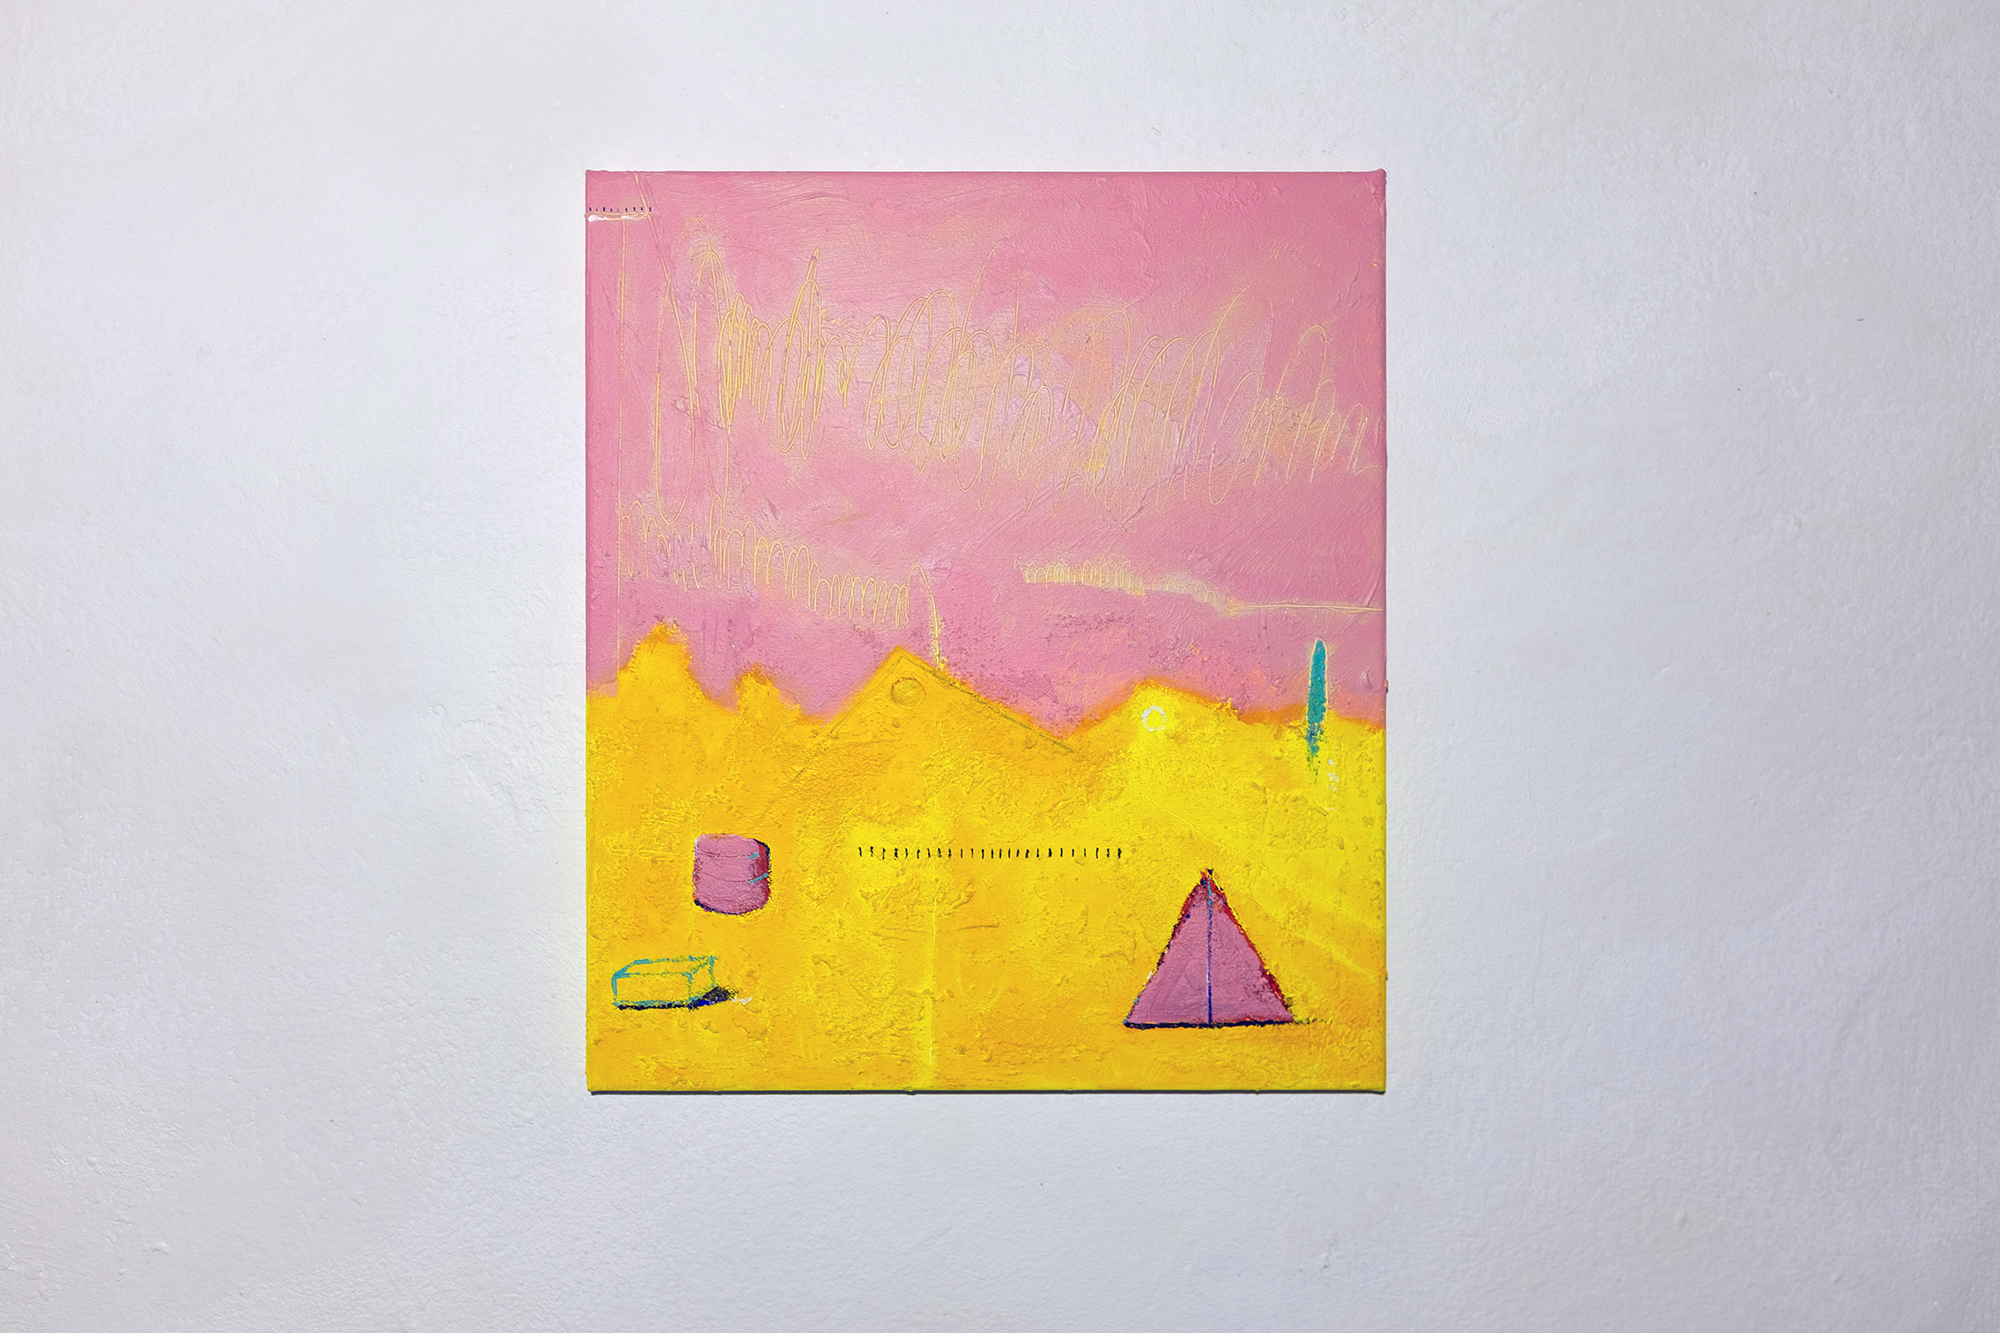 Slowed by the sun 13